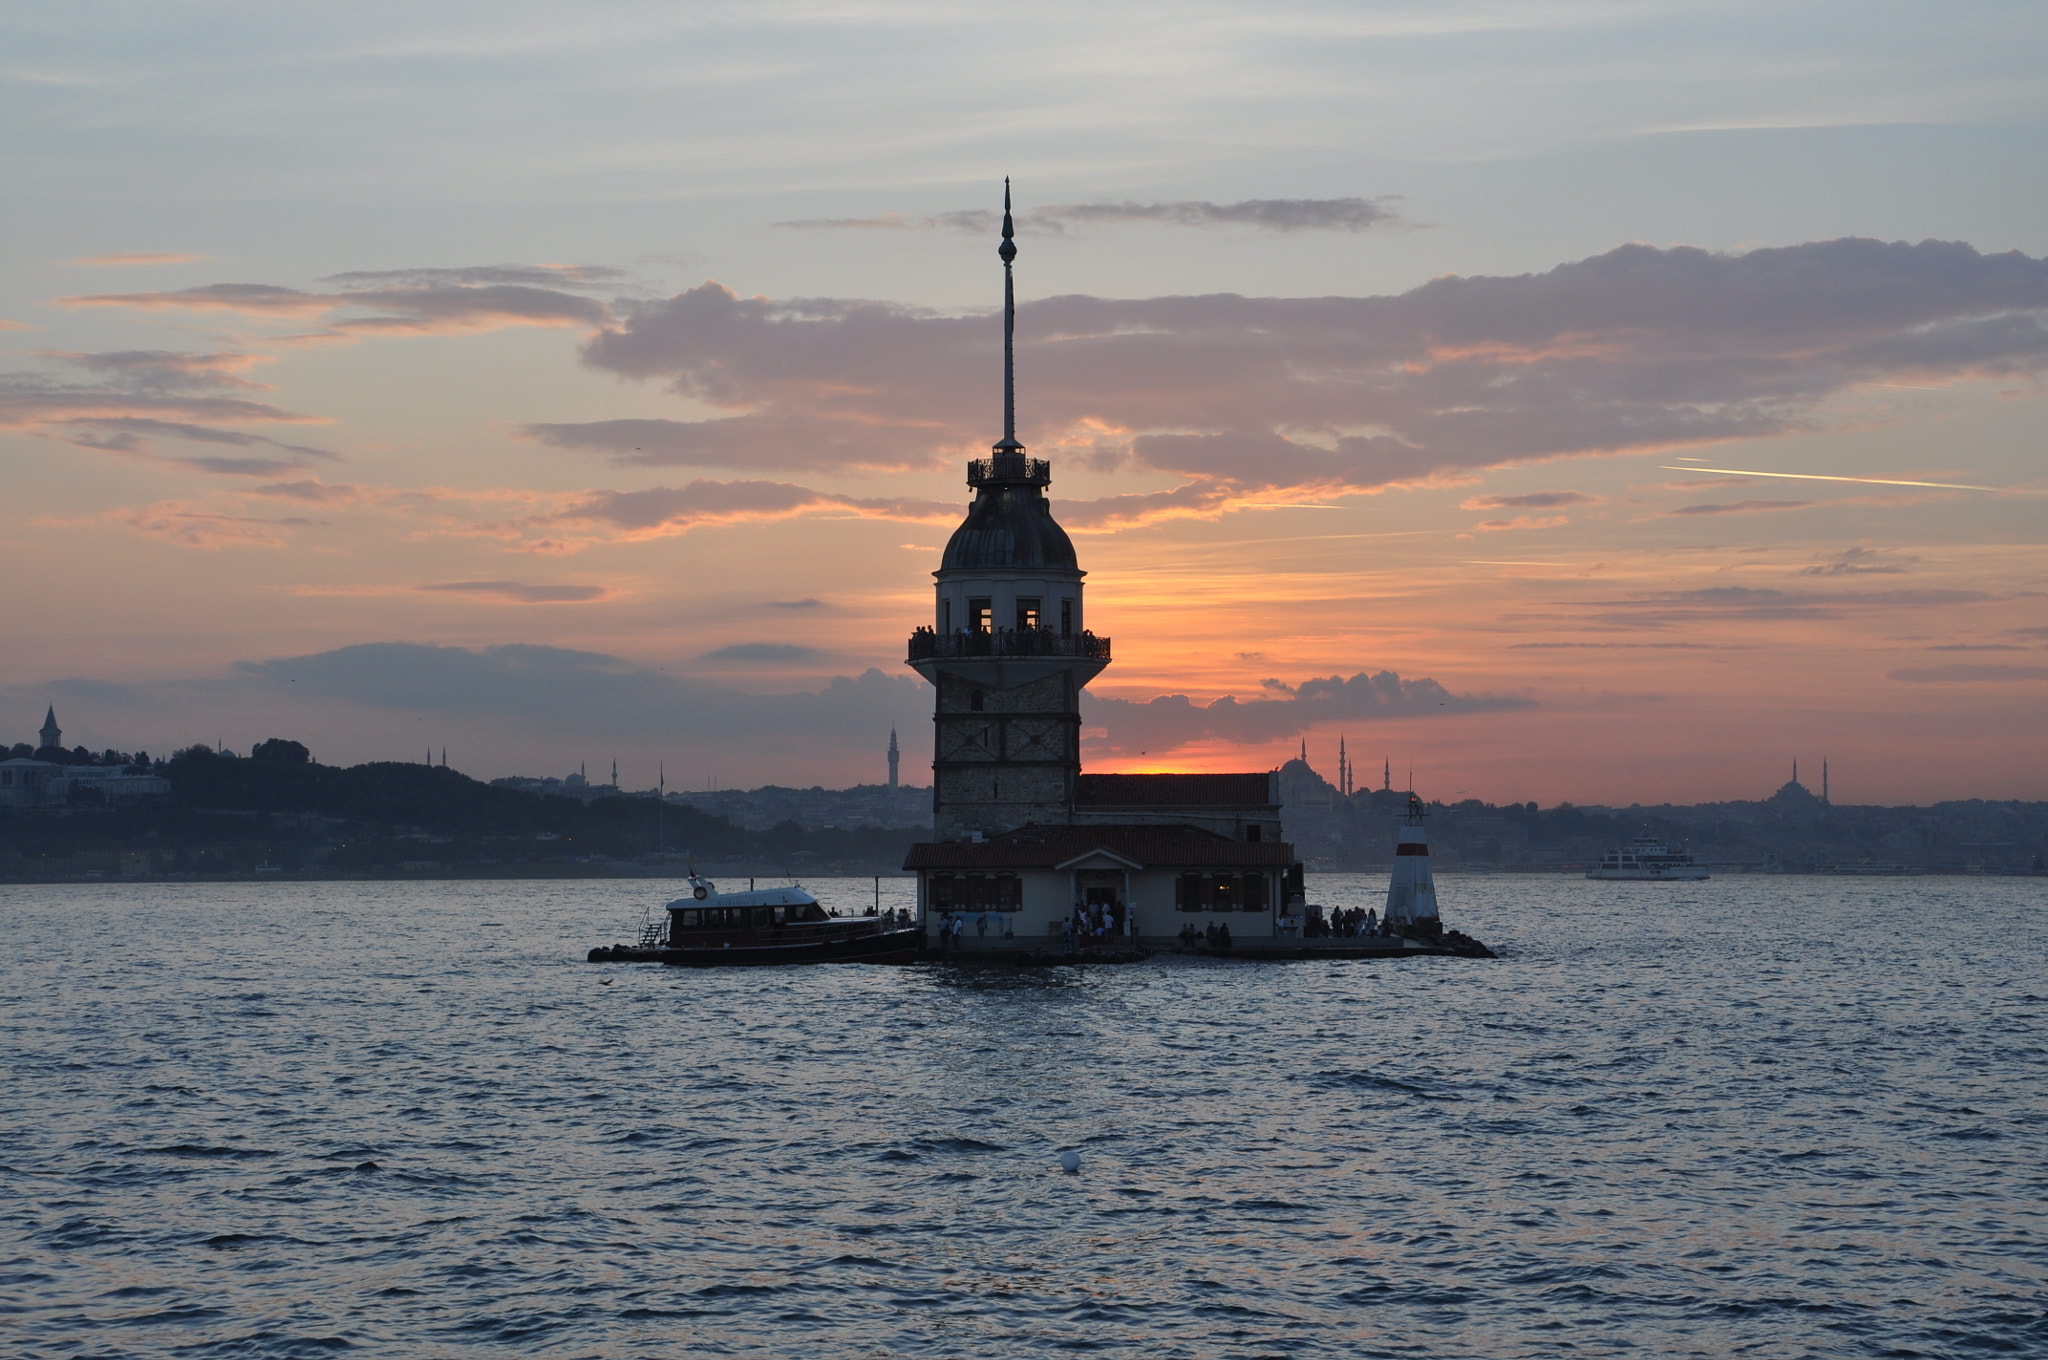 Photograph Maiden's Tower on day by Tayfun Karabay on 500px